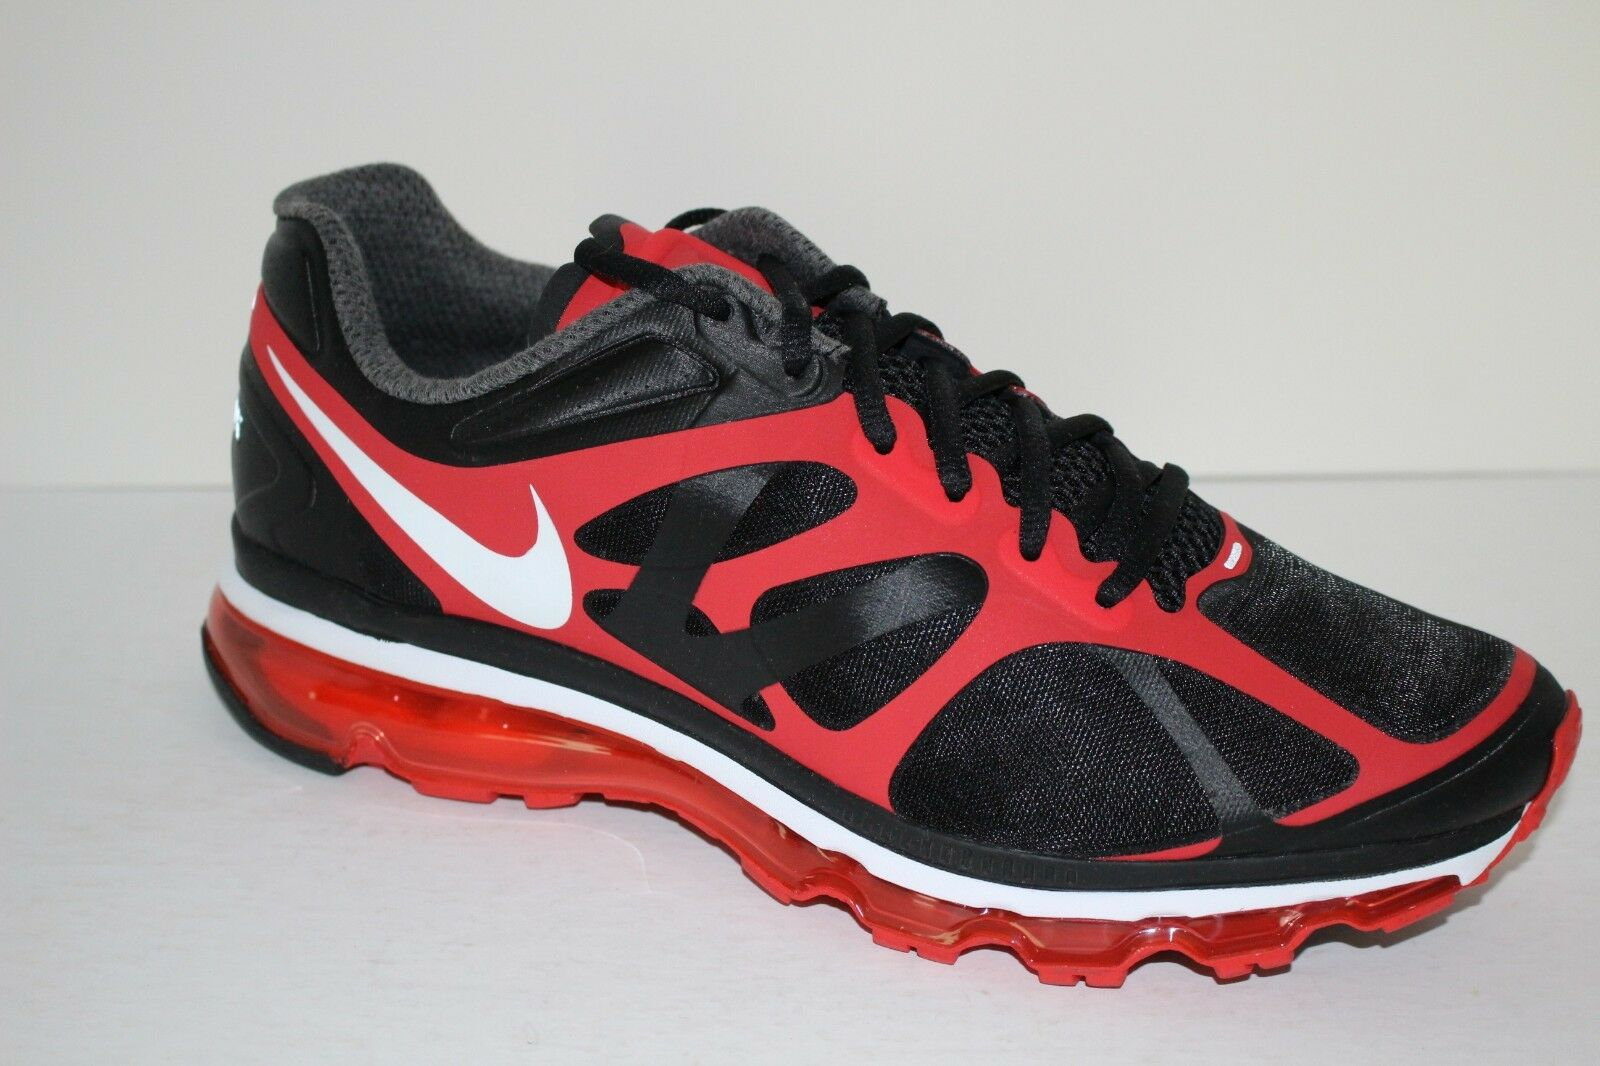 21a3afa3c8 Nike Air Max + 2012 Men's Sz 11 Running Course shoes Black Action Red  Sneakers